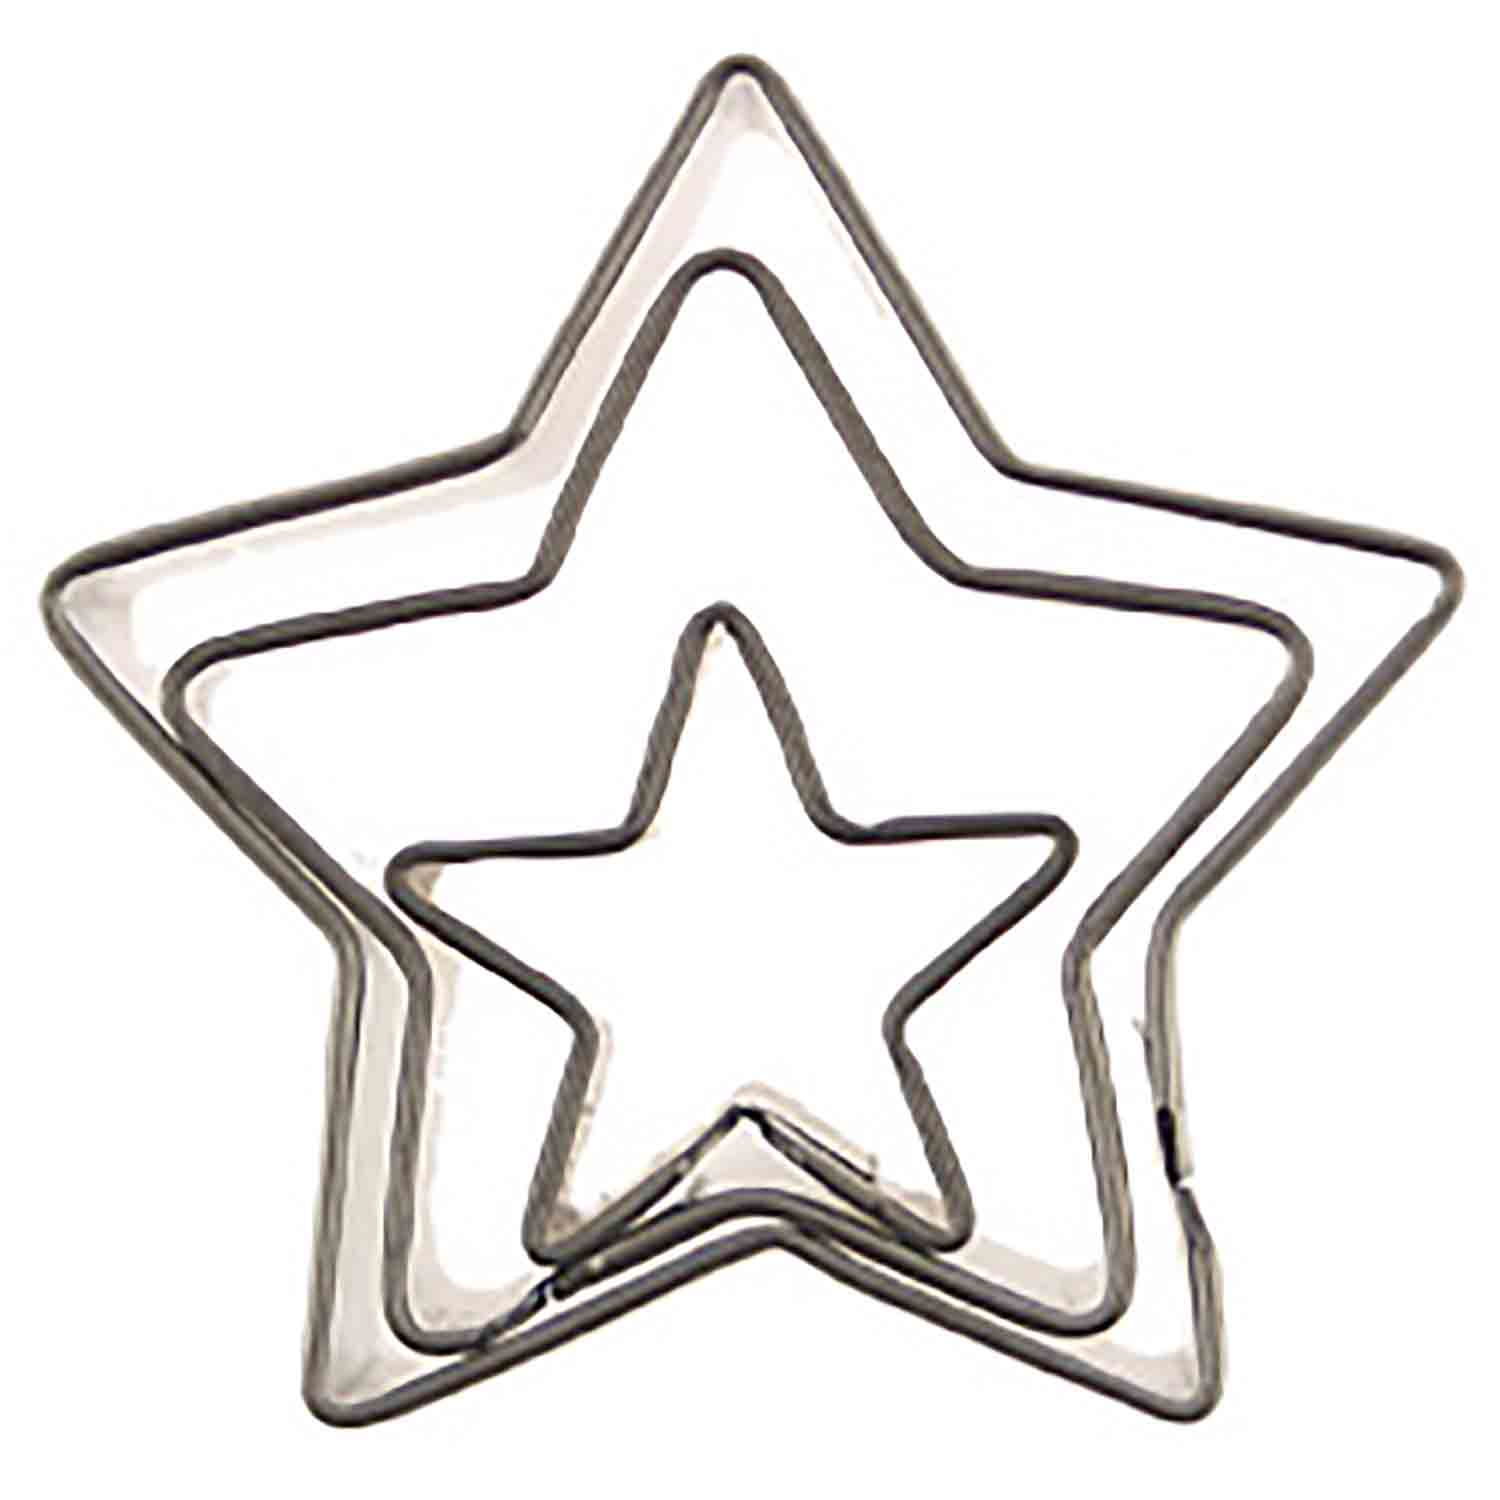 Makin's Cutter Set- Star